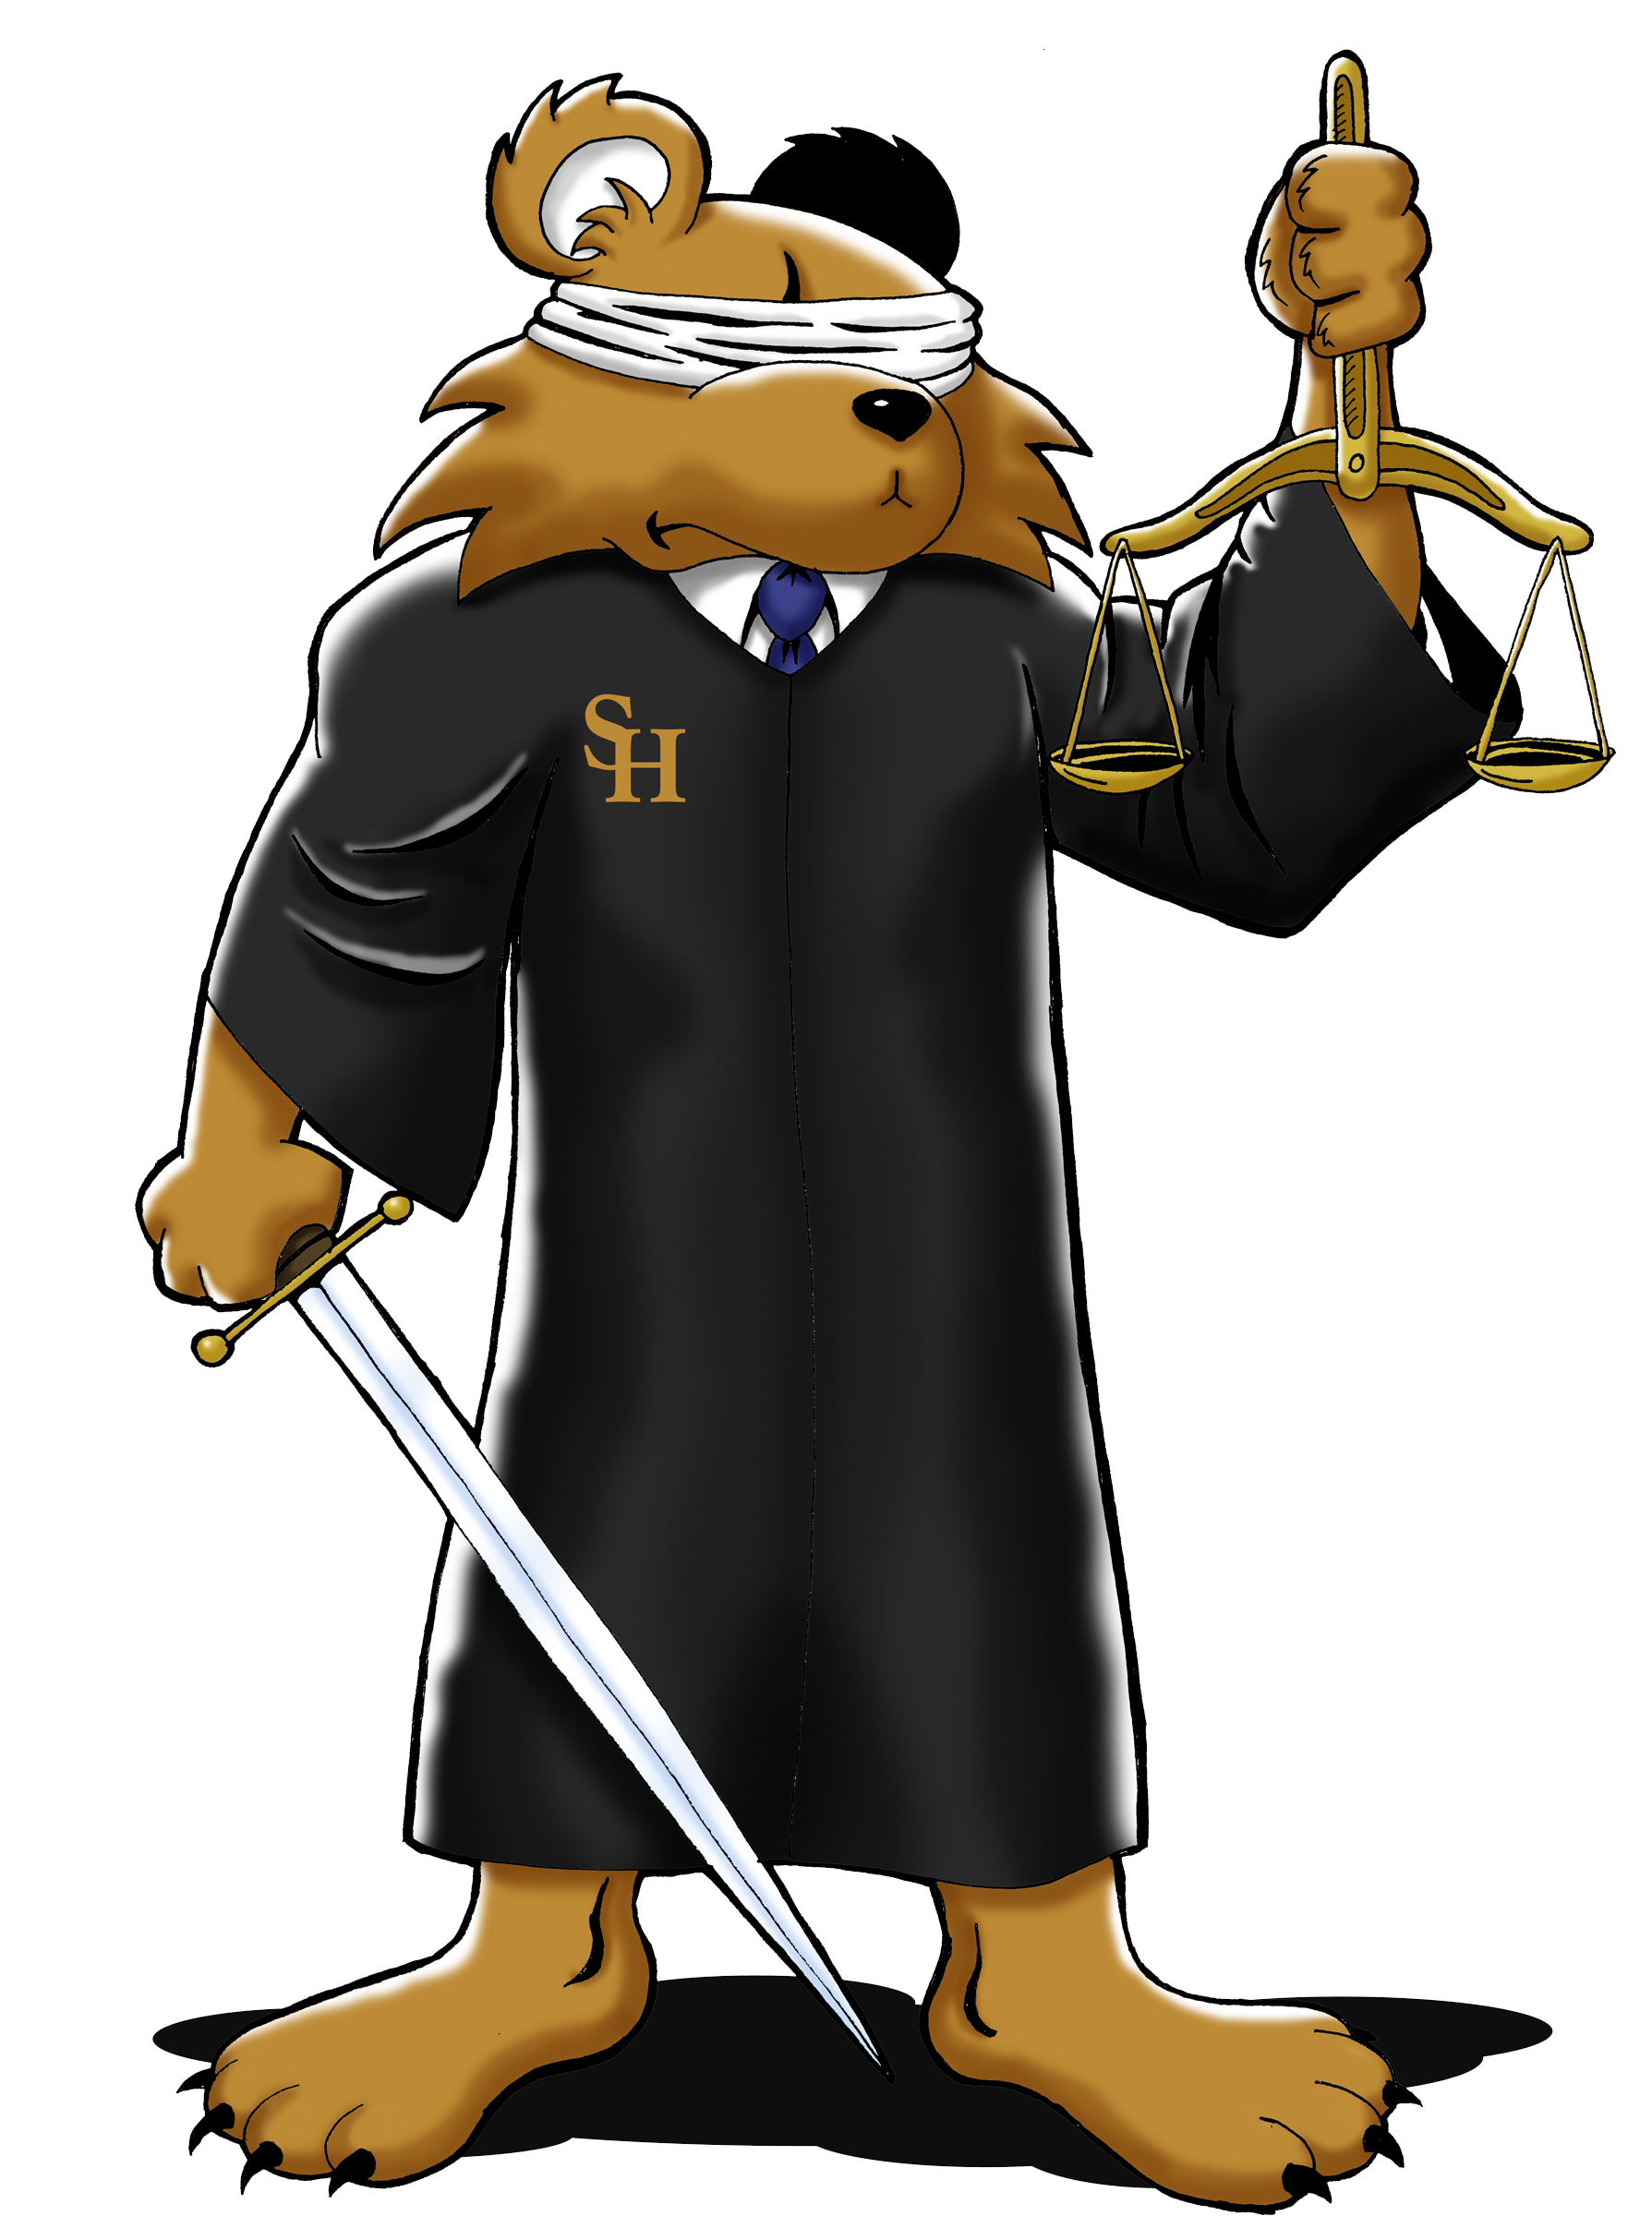 Justice Sammy Color - Large Transparent